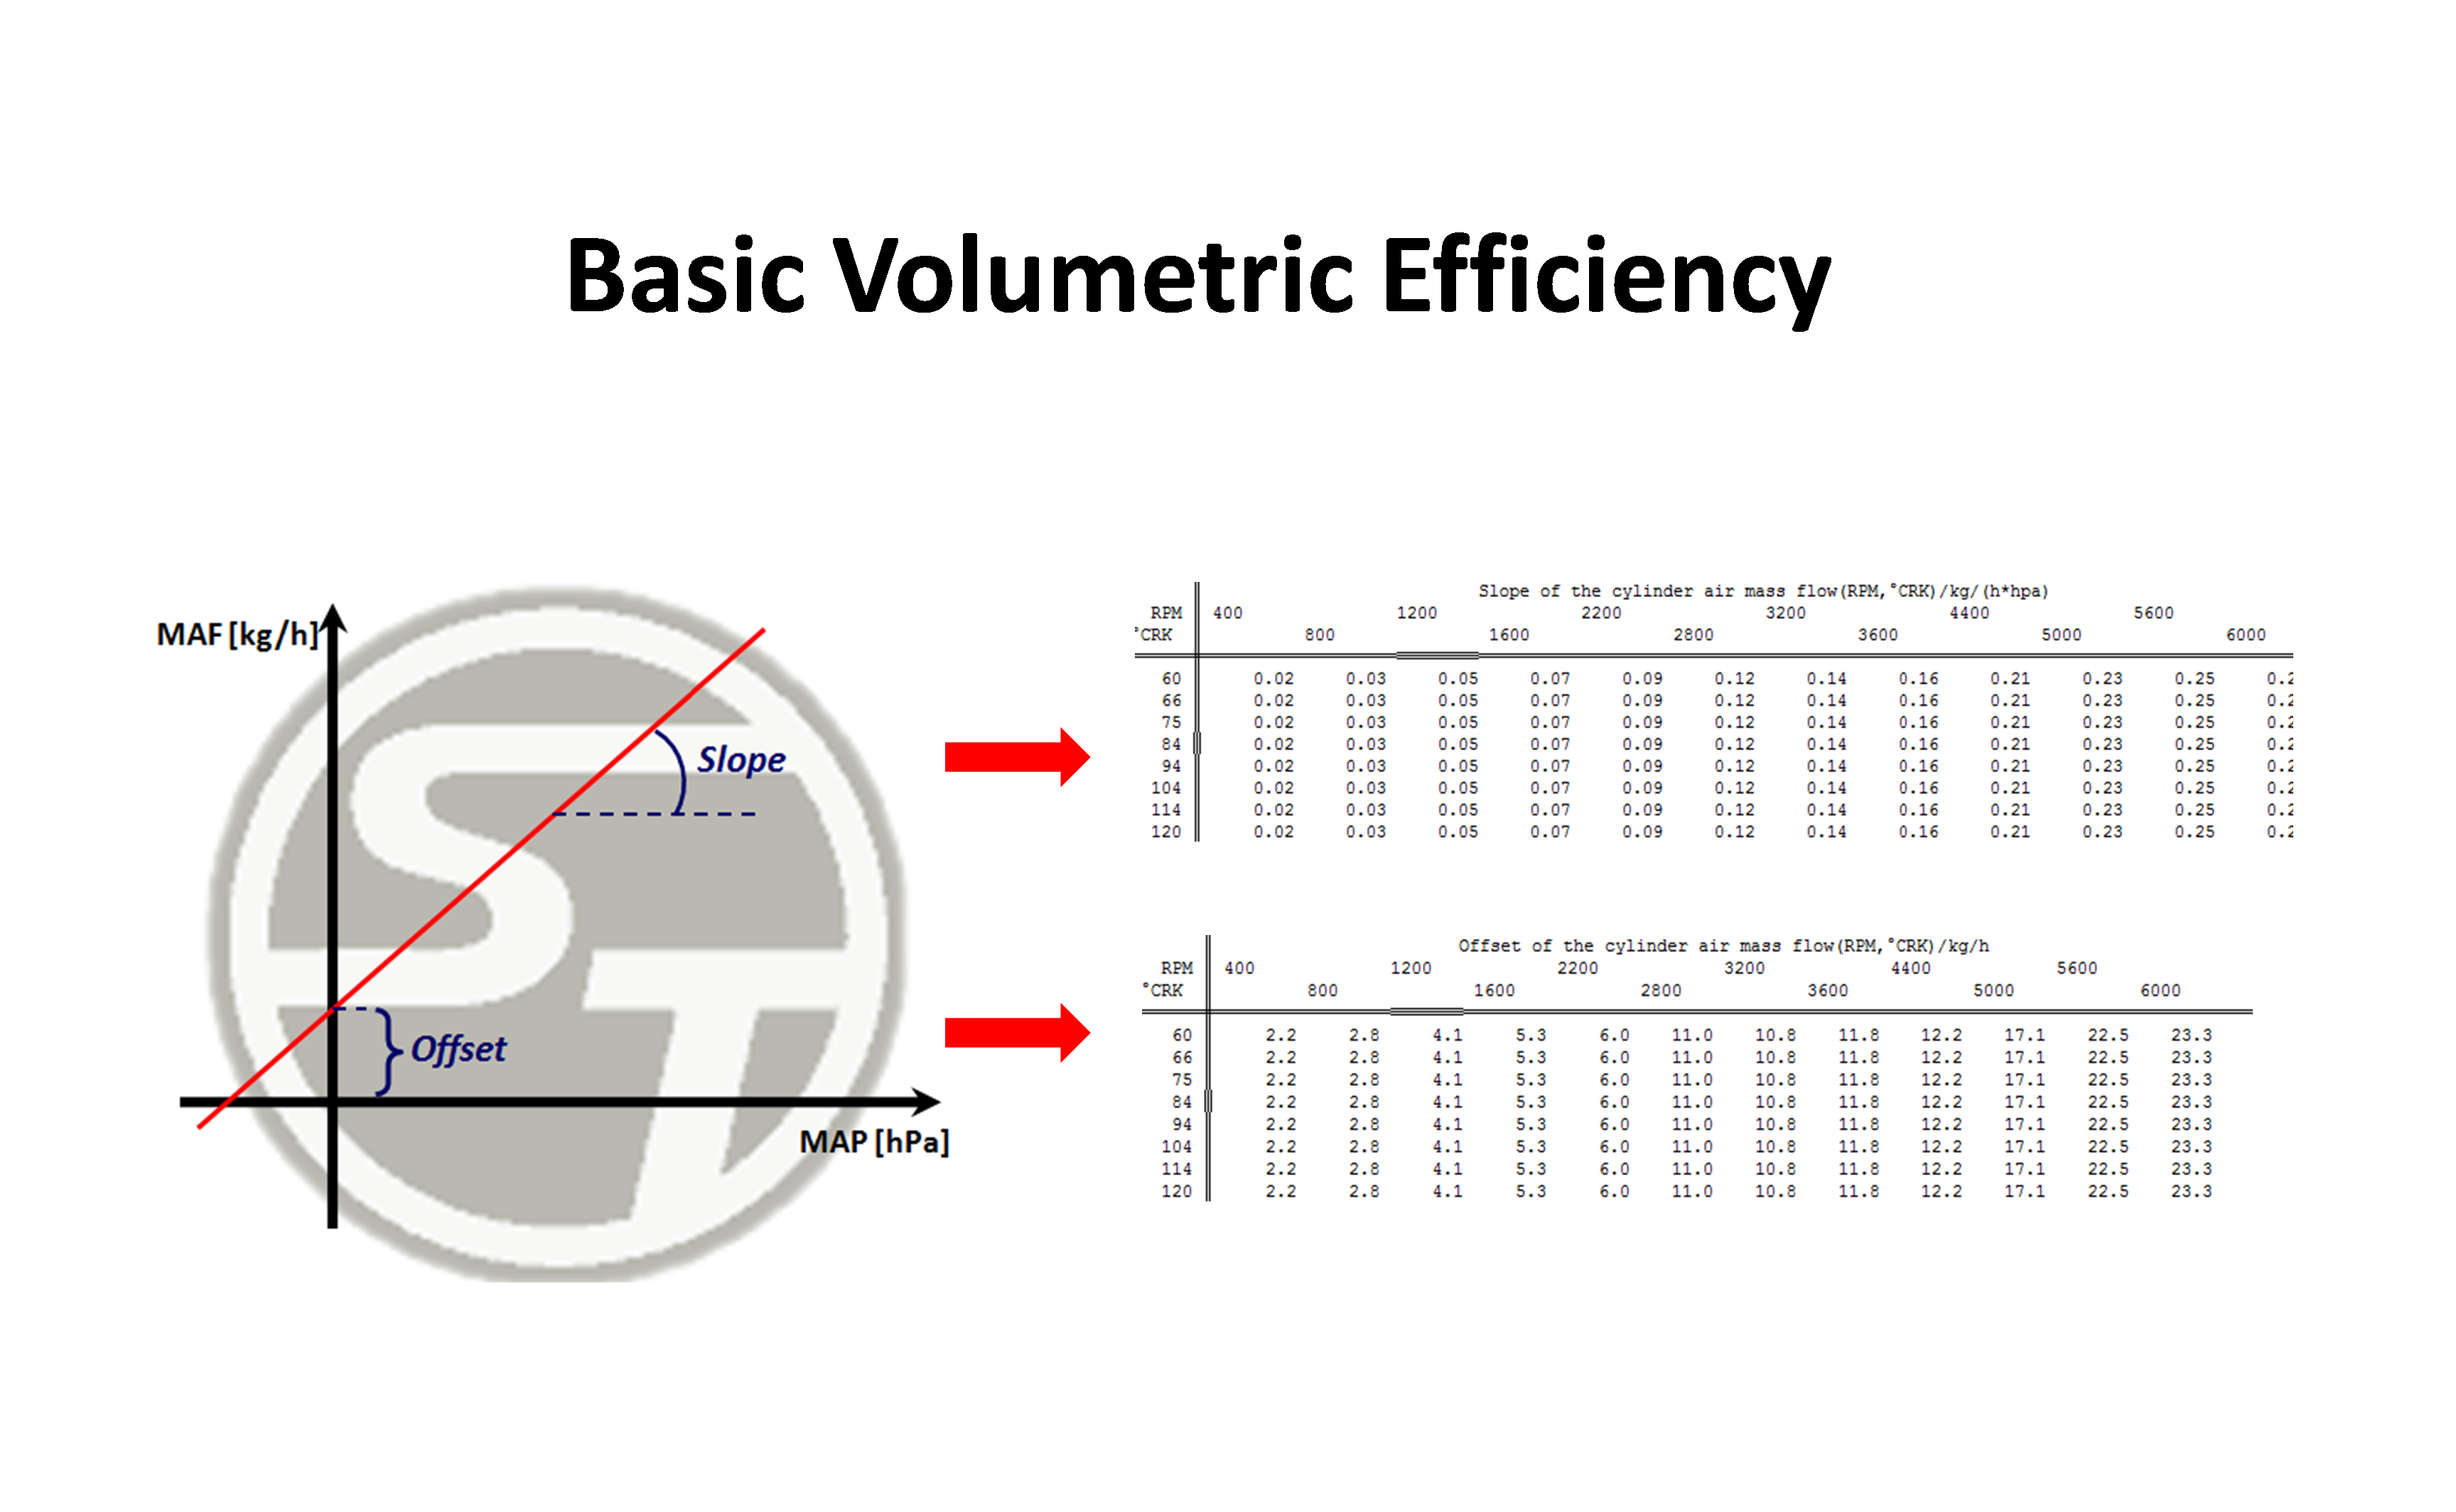 Basic Volumetric Efficiency